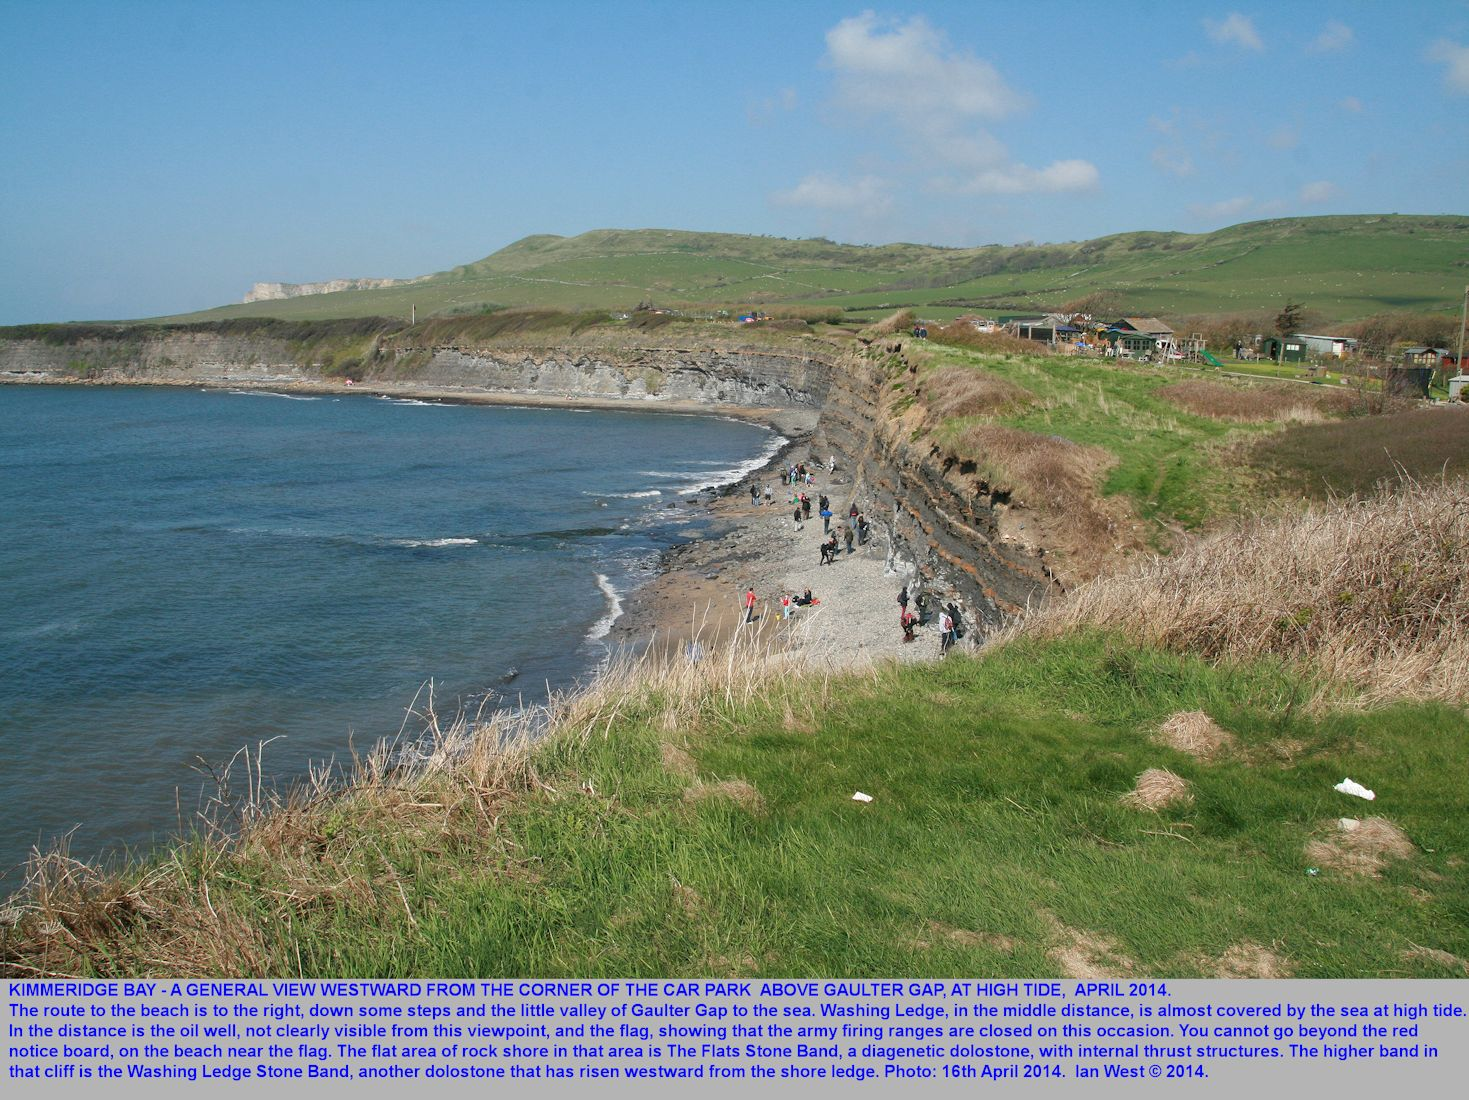 Above Gaulter Gap looking westward in Kimmeridge Bay, Dorset, at high tide, 16th April 2014